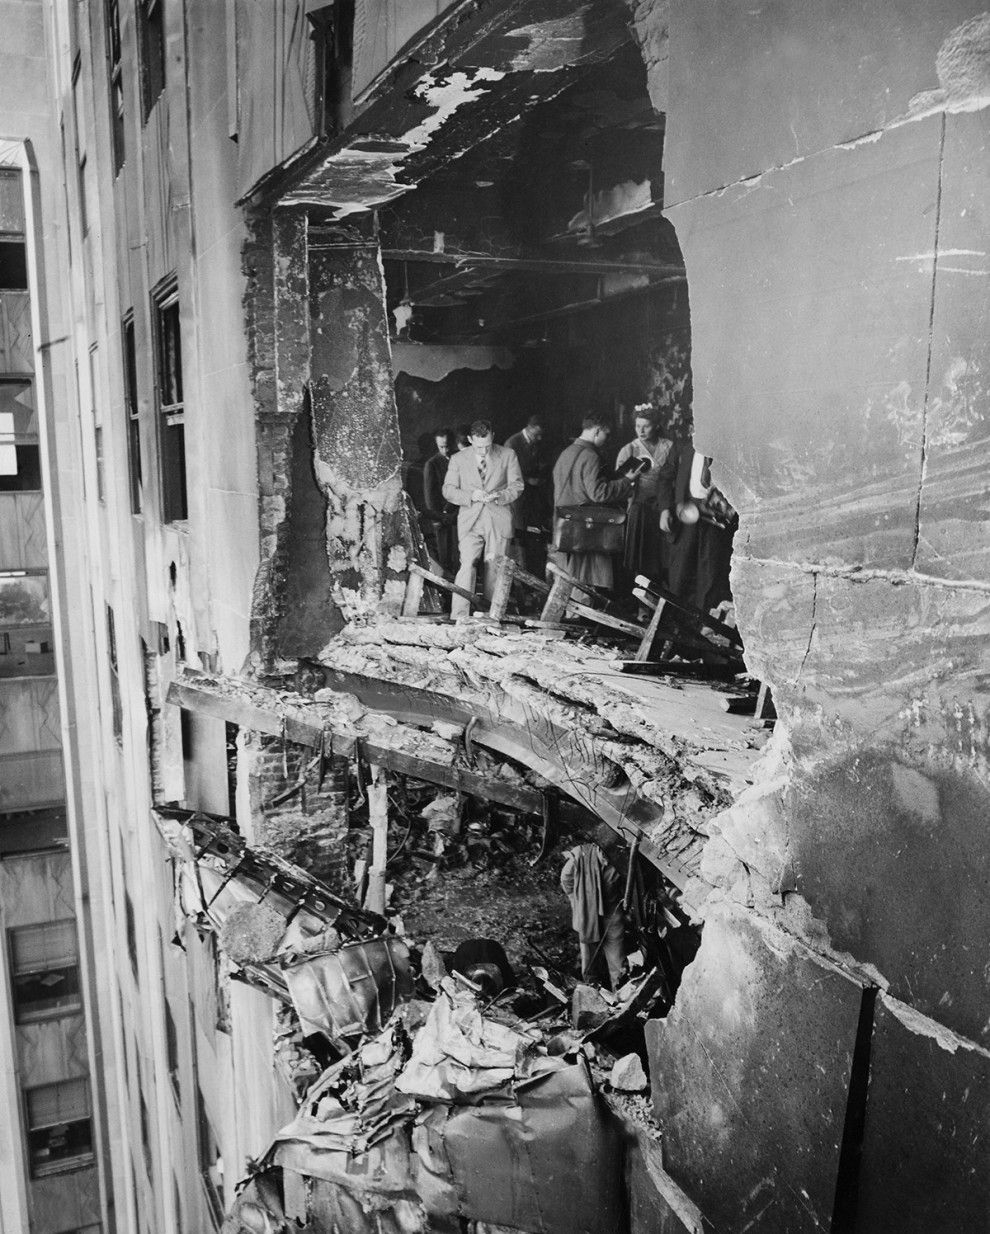 The scorched aftermath of a B-25 bomber crash into the side of the ...